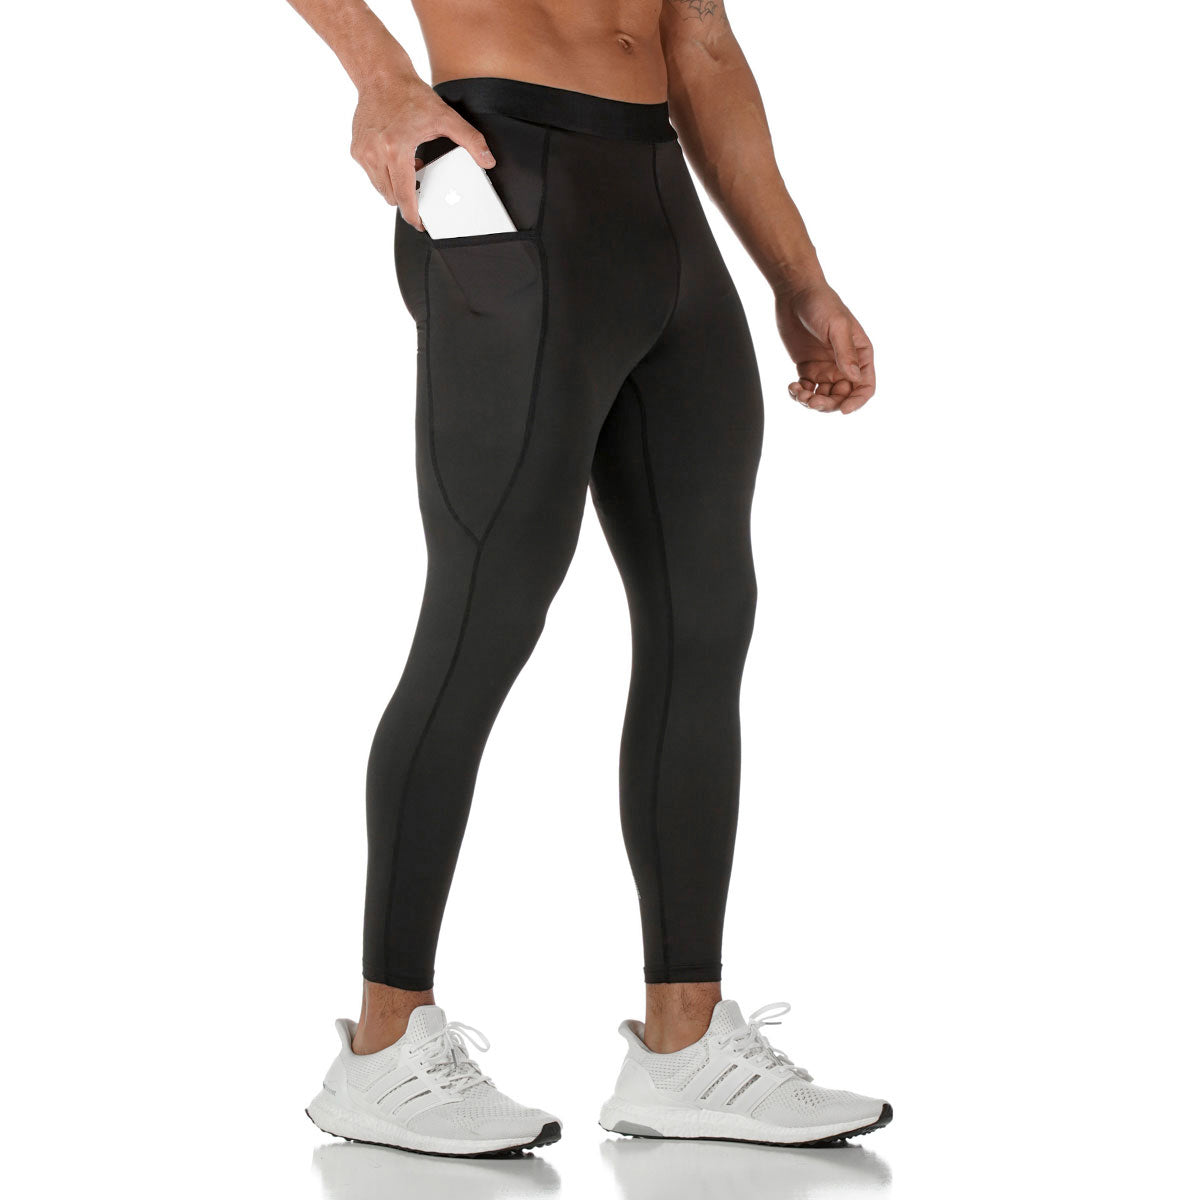 0267. SilverPlus® ¾-Length Side Pocket Legging - Black